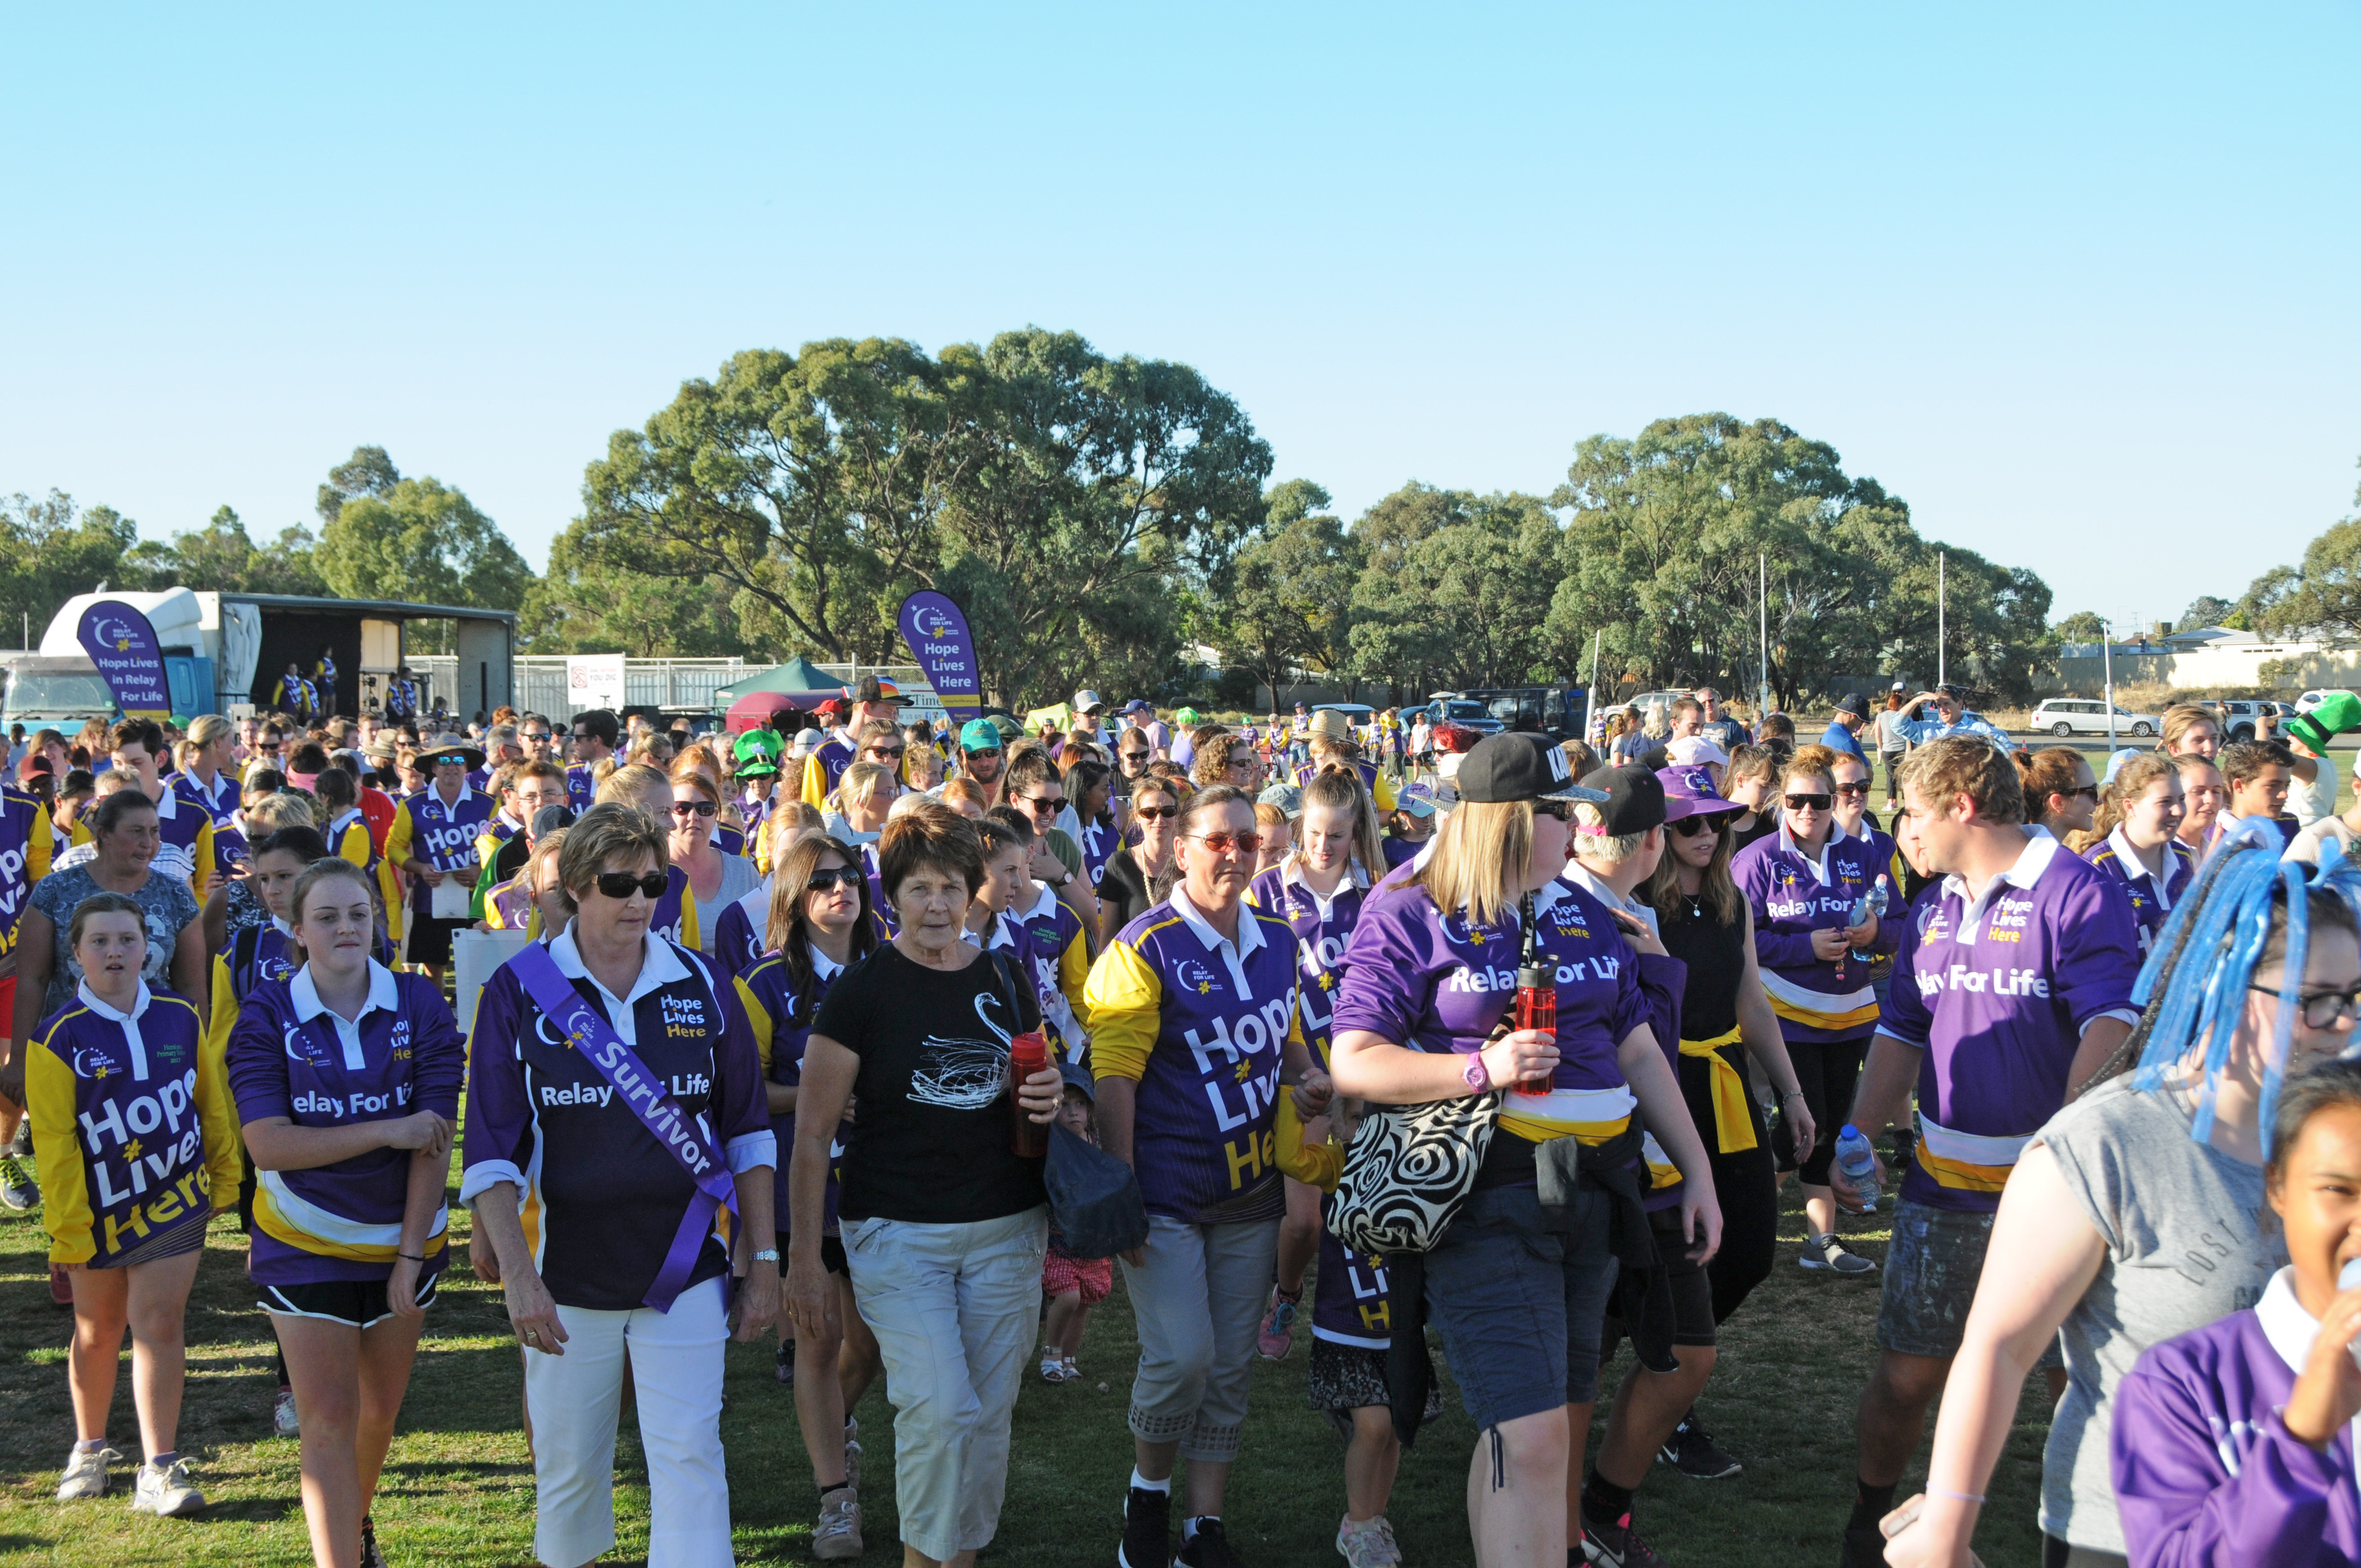 Image - Horsham and District Relay for Life, 170317. The relay has begun!